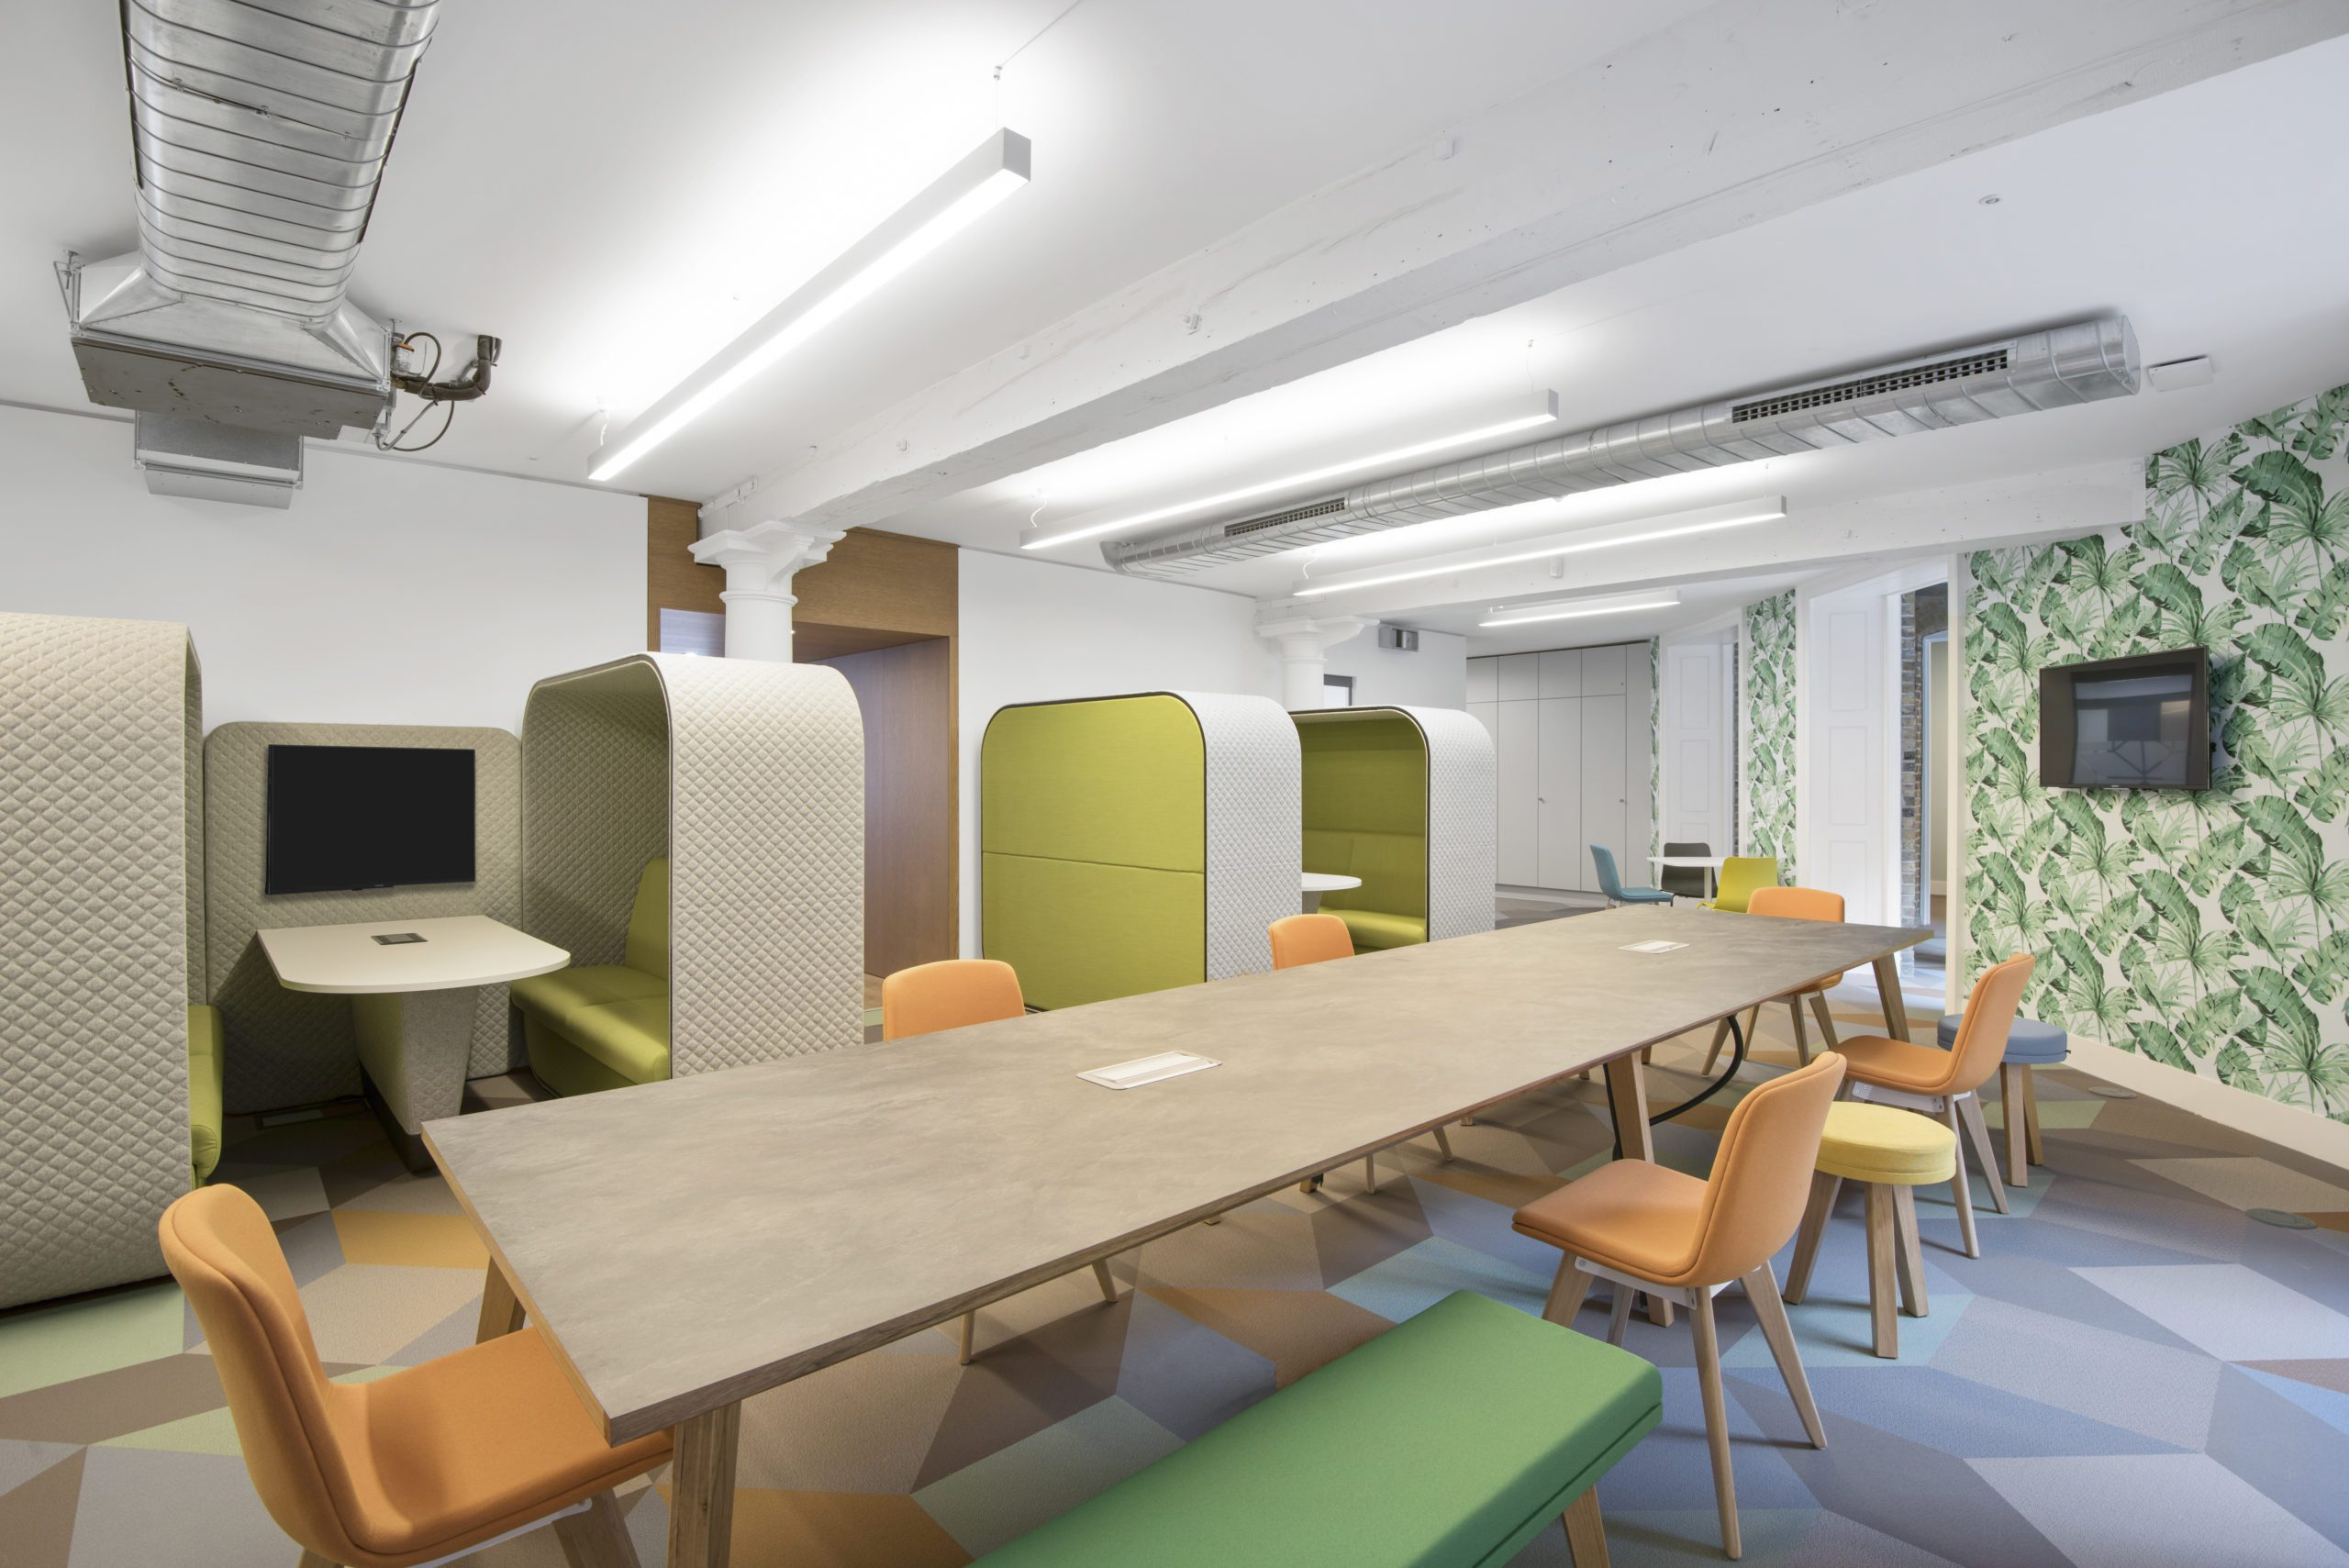 Enabling Agile Working through Office Design - K2space